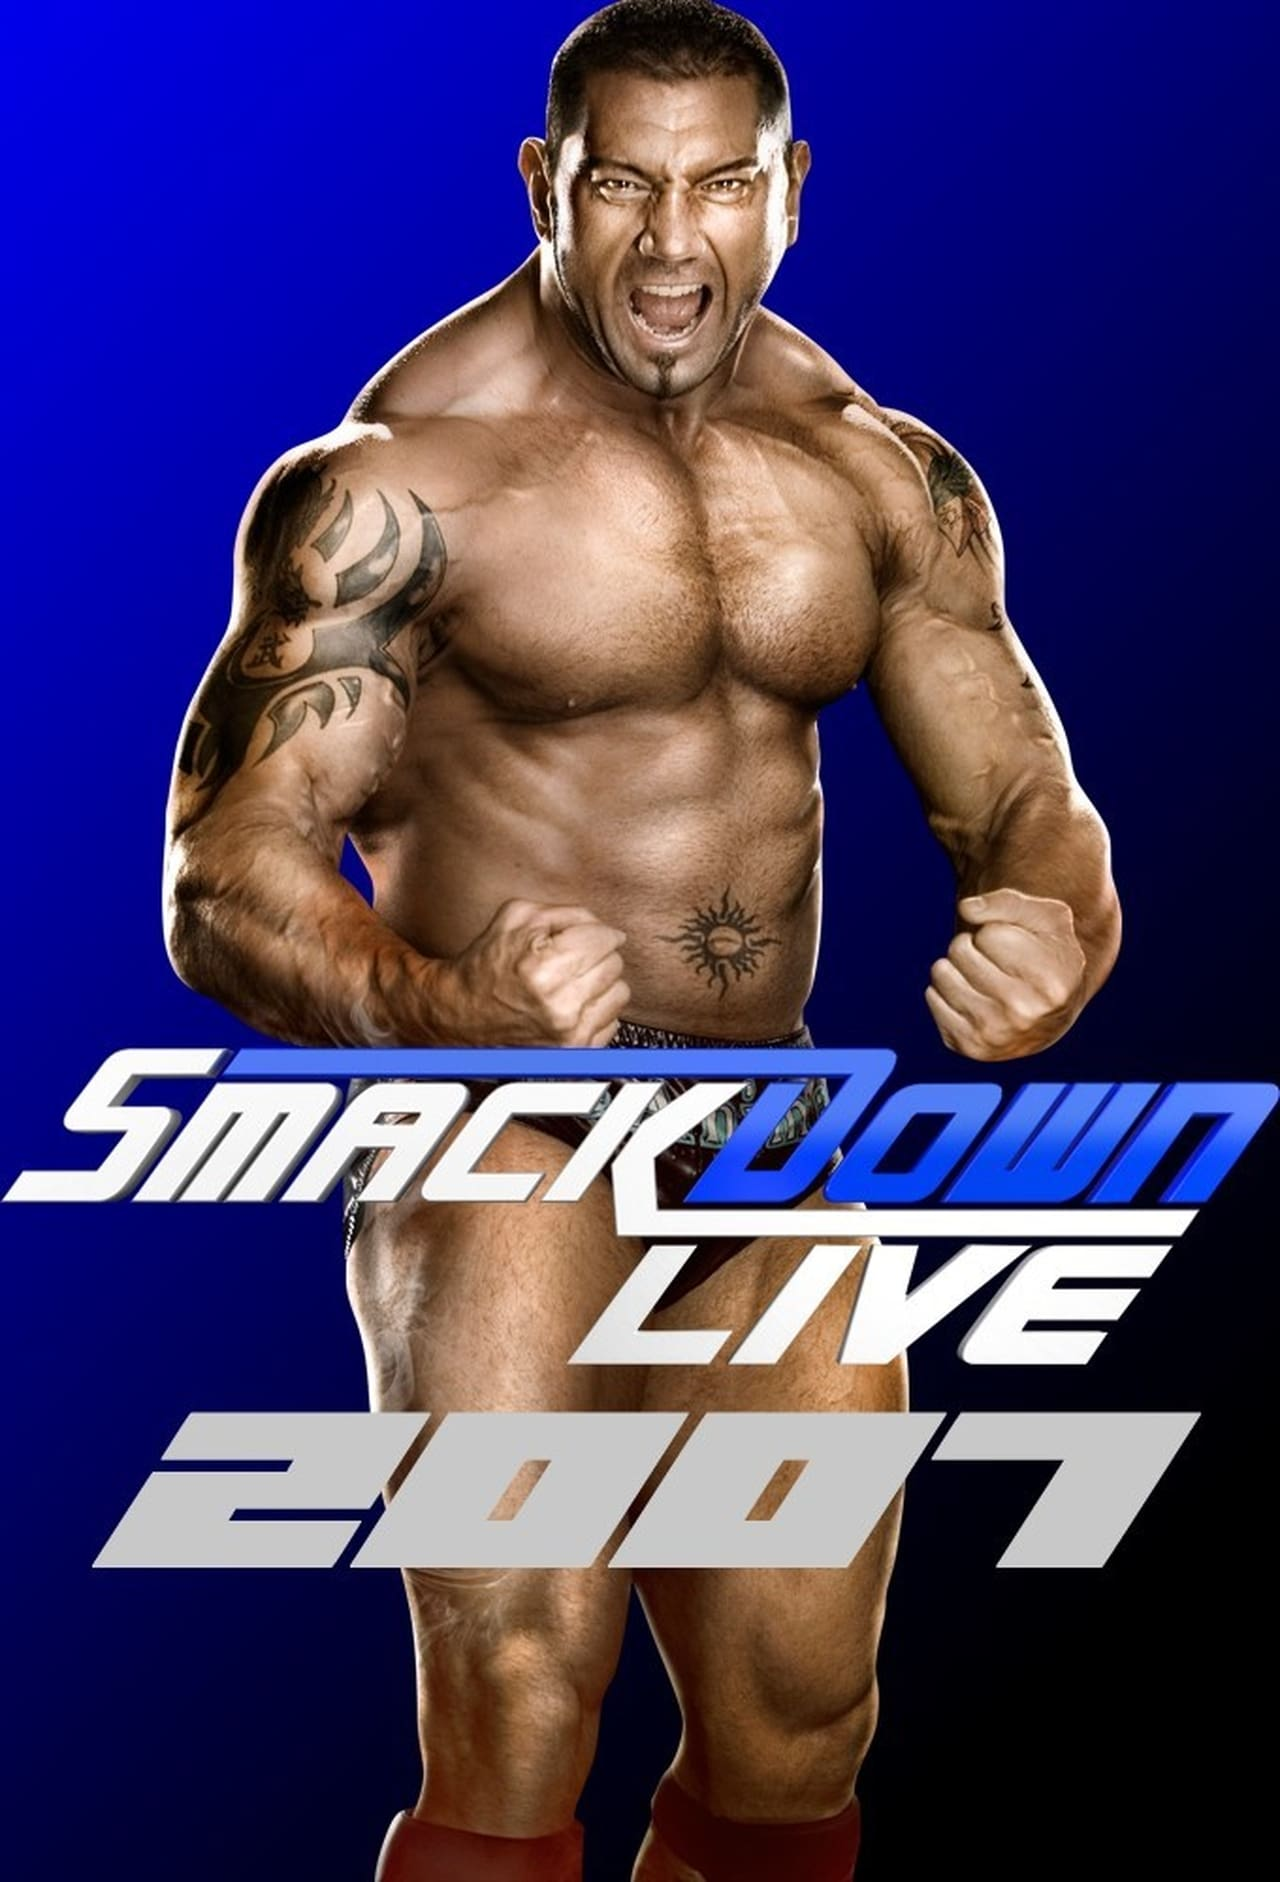 Putlocker Wwe Smackdown Live Season 9 (2007)